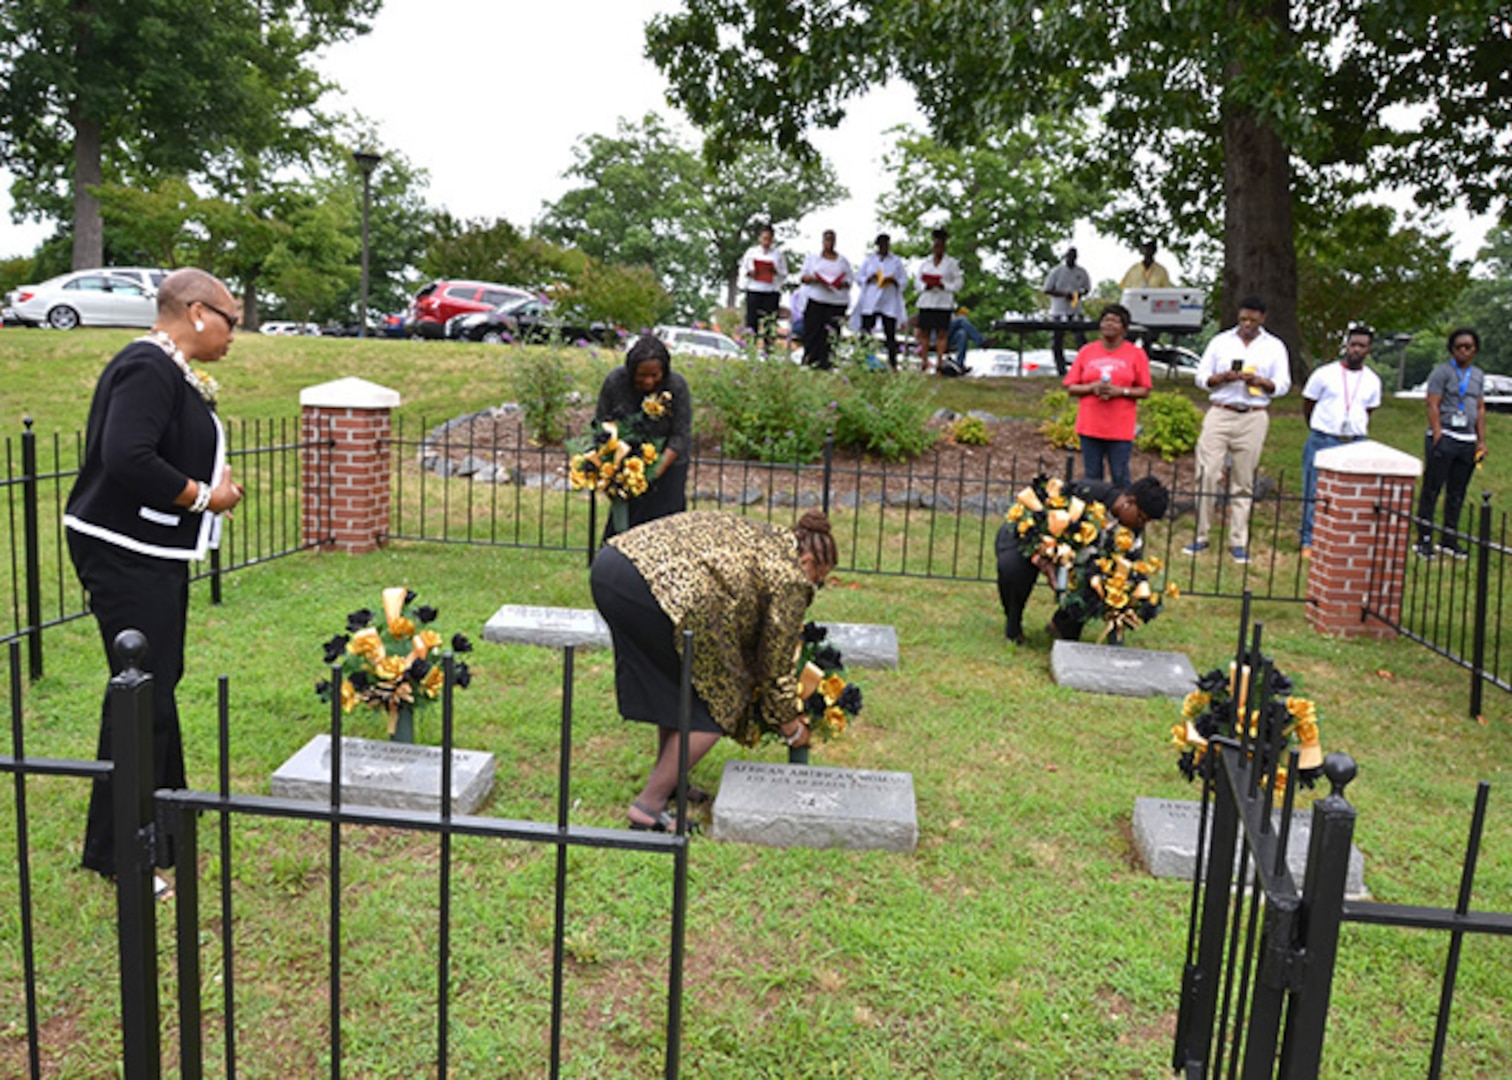 Defense Logistics Agency Aviation's Bellwood Chapter of Blacks in Government members place flowers on the graves of unknown African-Americans during the Juneteenth Observance celebrated June 23, 2017 on Defense Supply Center Richmond, Virginia.